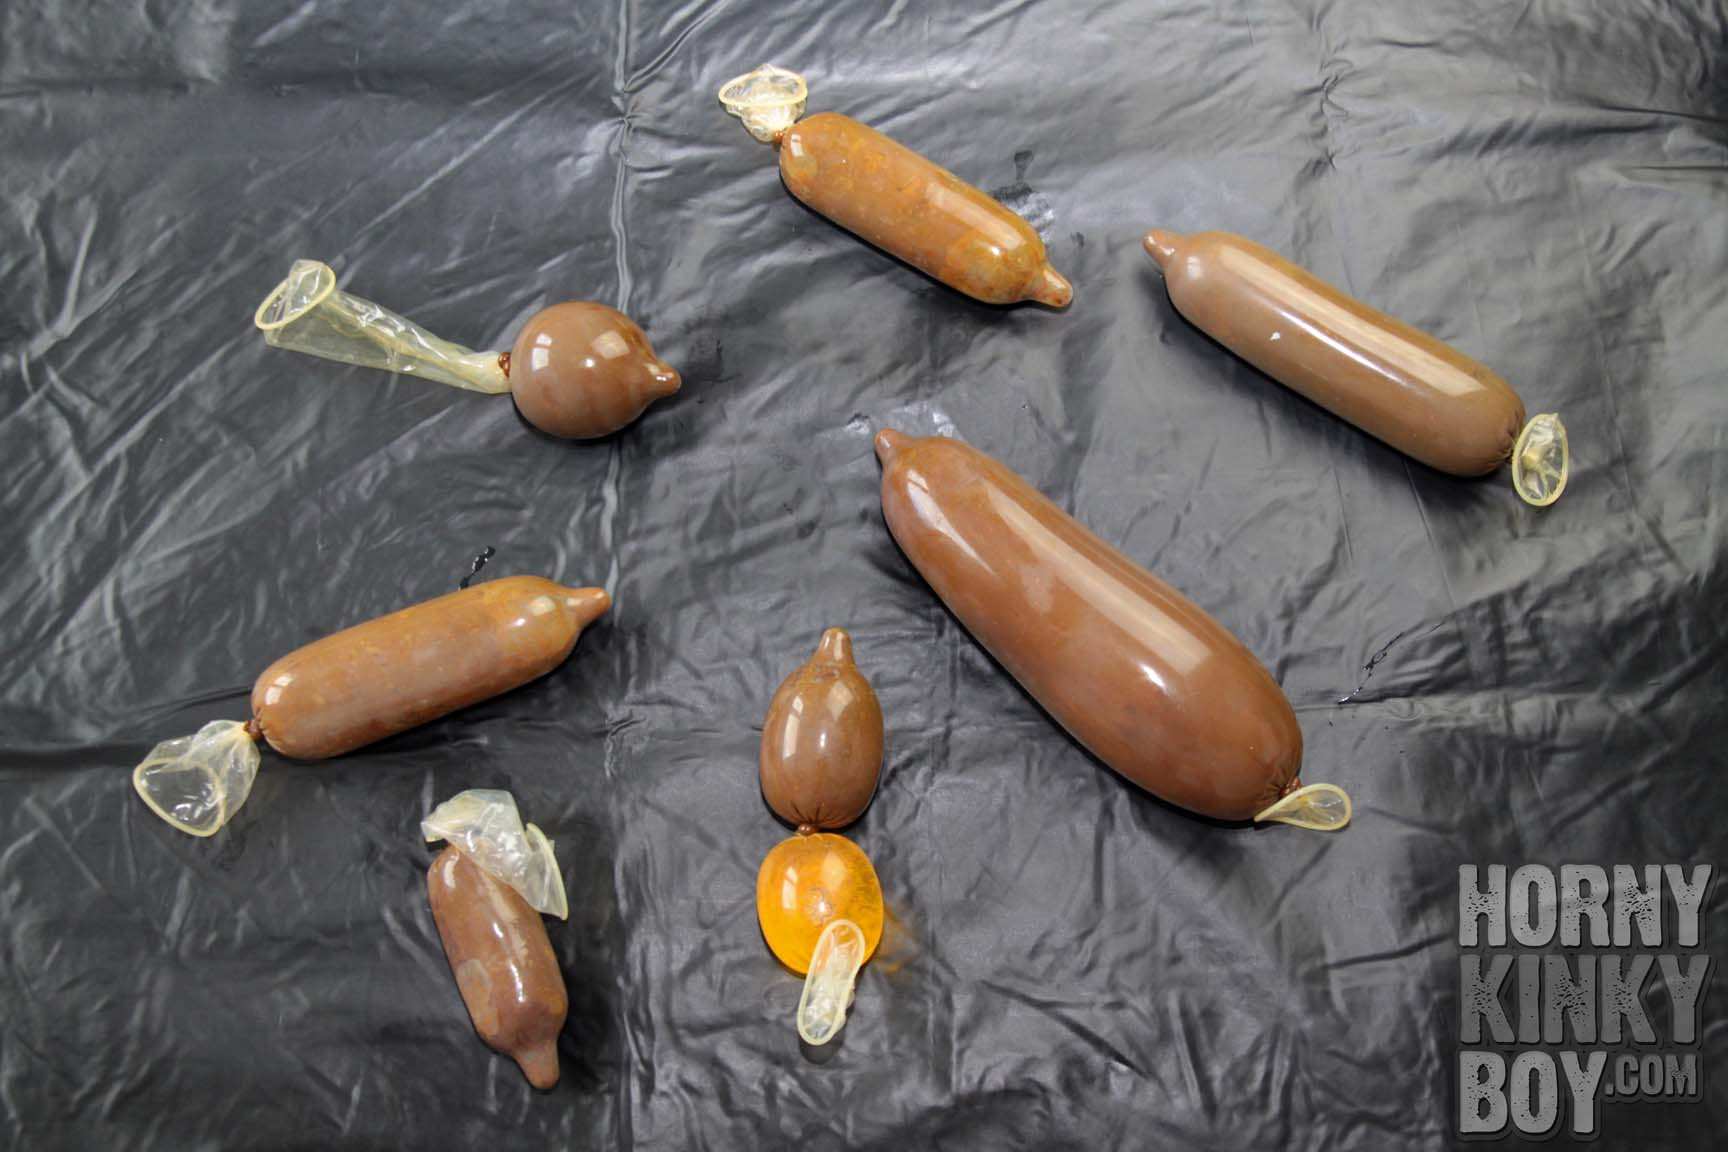 HornyKinkyBoy's Awesome Shit Condom Collection